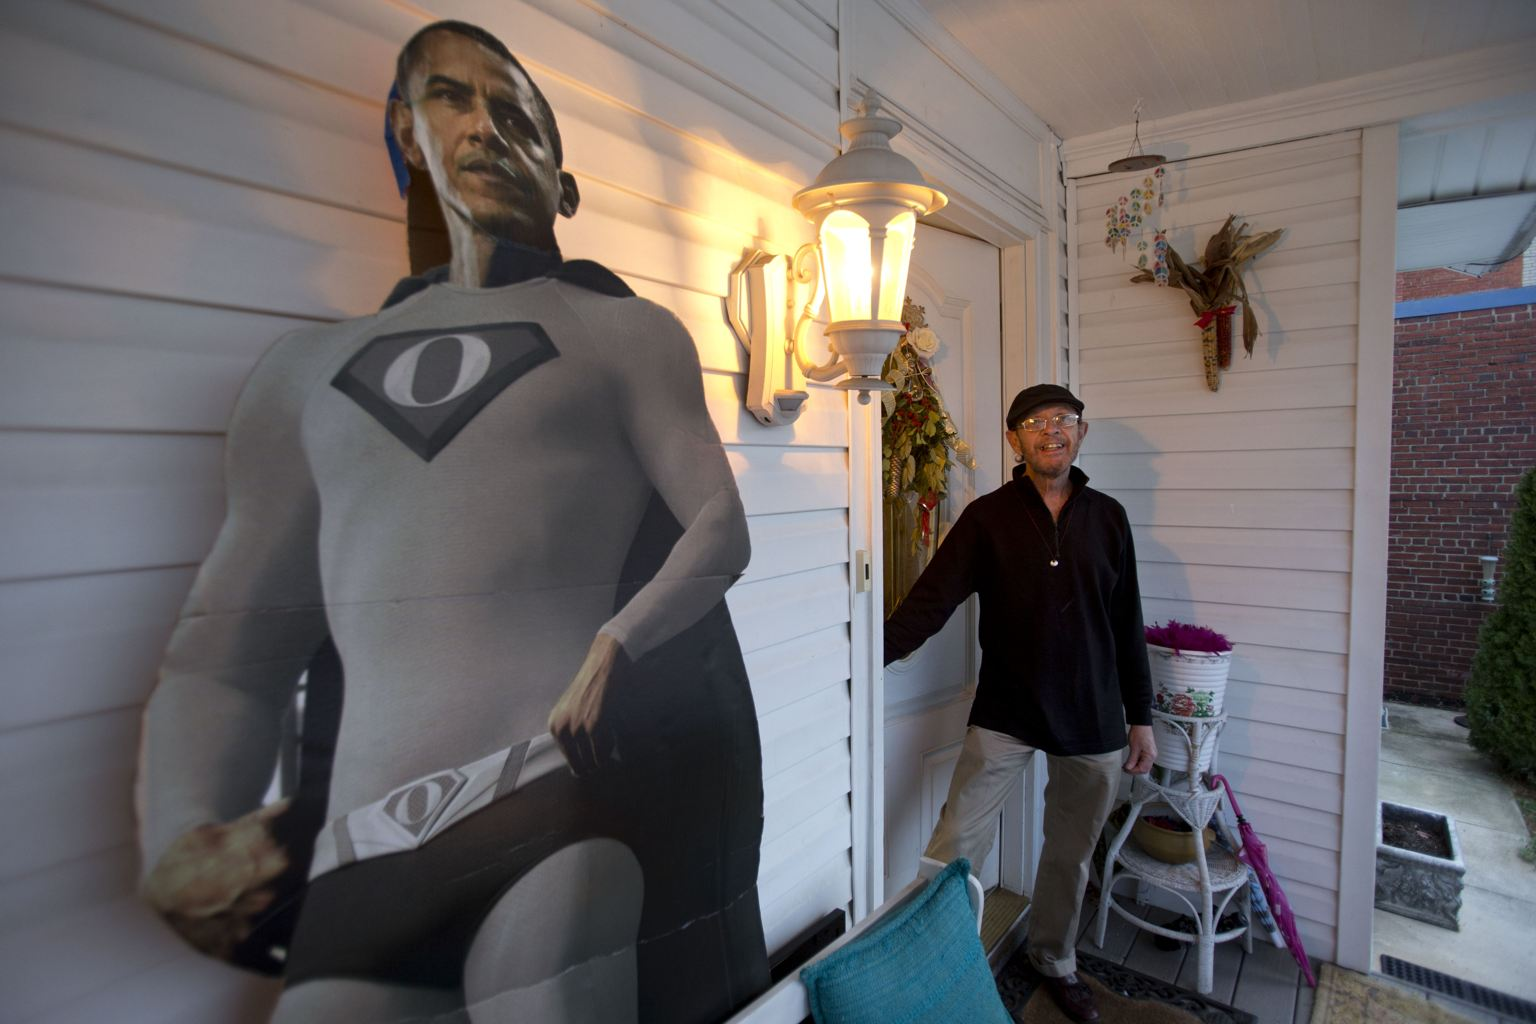 In this Thursday, Dec. 20, 2012, photo, Bernard Duval, innkeeper of the Aunt Bee's Little White House B&B, stands in the doorway by a cutout of President Barack Obama in a super hero outfit, at the B&B in Washington. The six-room bed and breakfast in northeast Washington still had two rooms available for the presidential inauguration as of the week before Christmas, with rates starting at $225 a night. (AP Photo/Jacquelyn Martin)